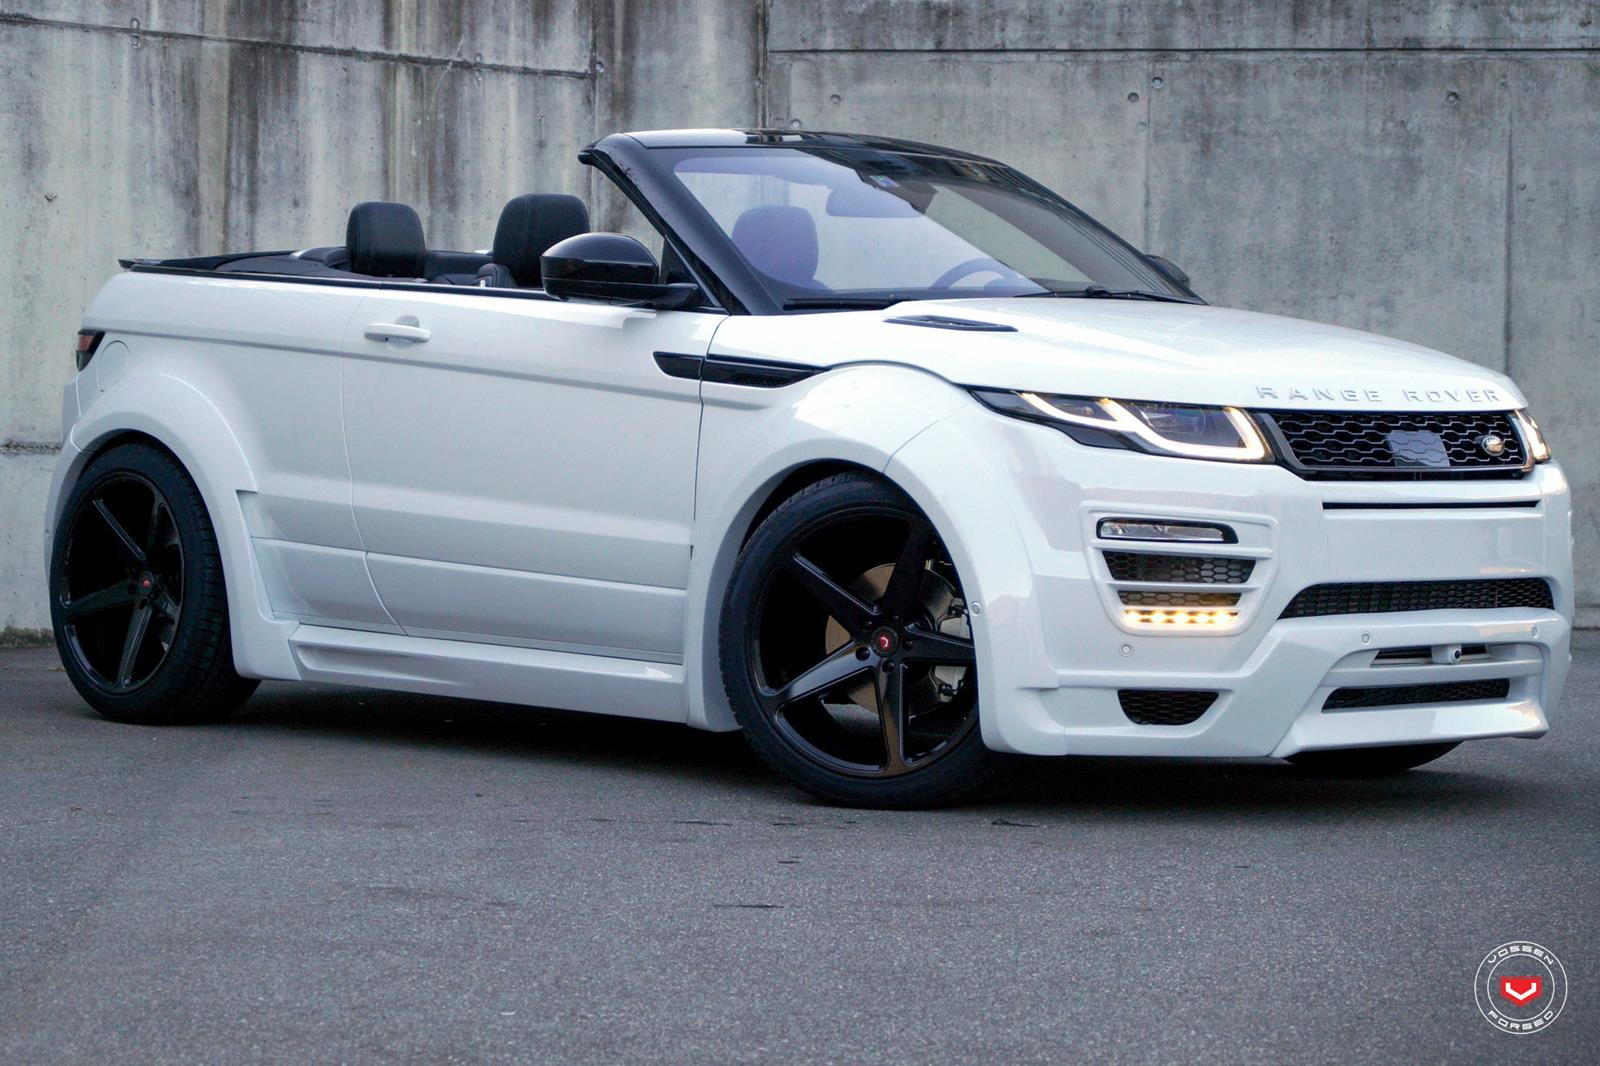 range rover evoque hamann wide body with vossen wheels. Black Bedroom Furniture Sets. Home Design Ideas